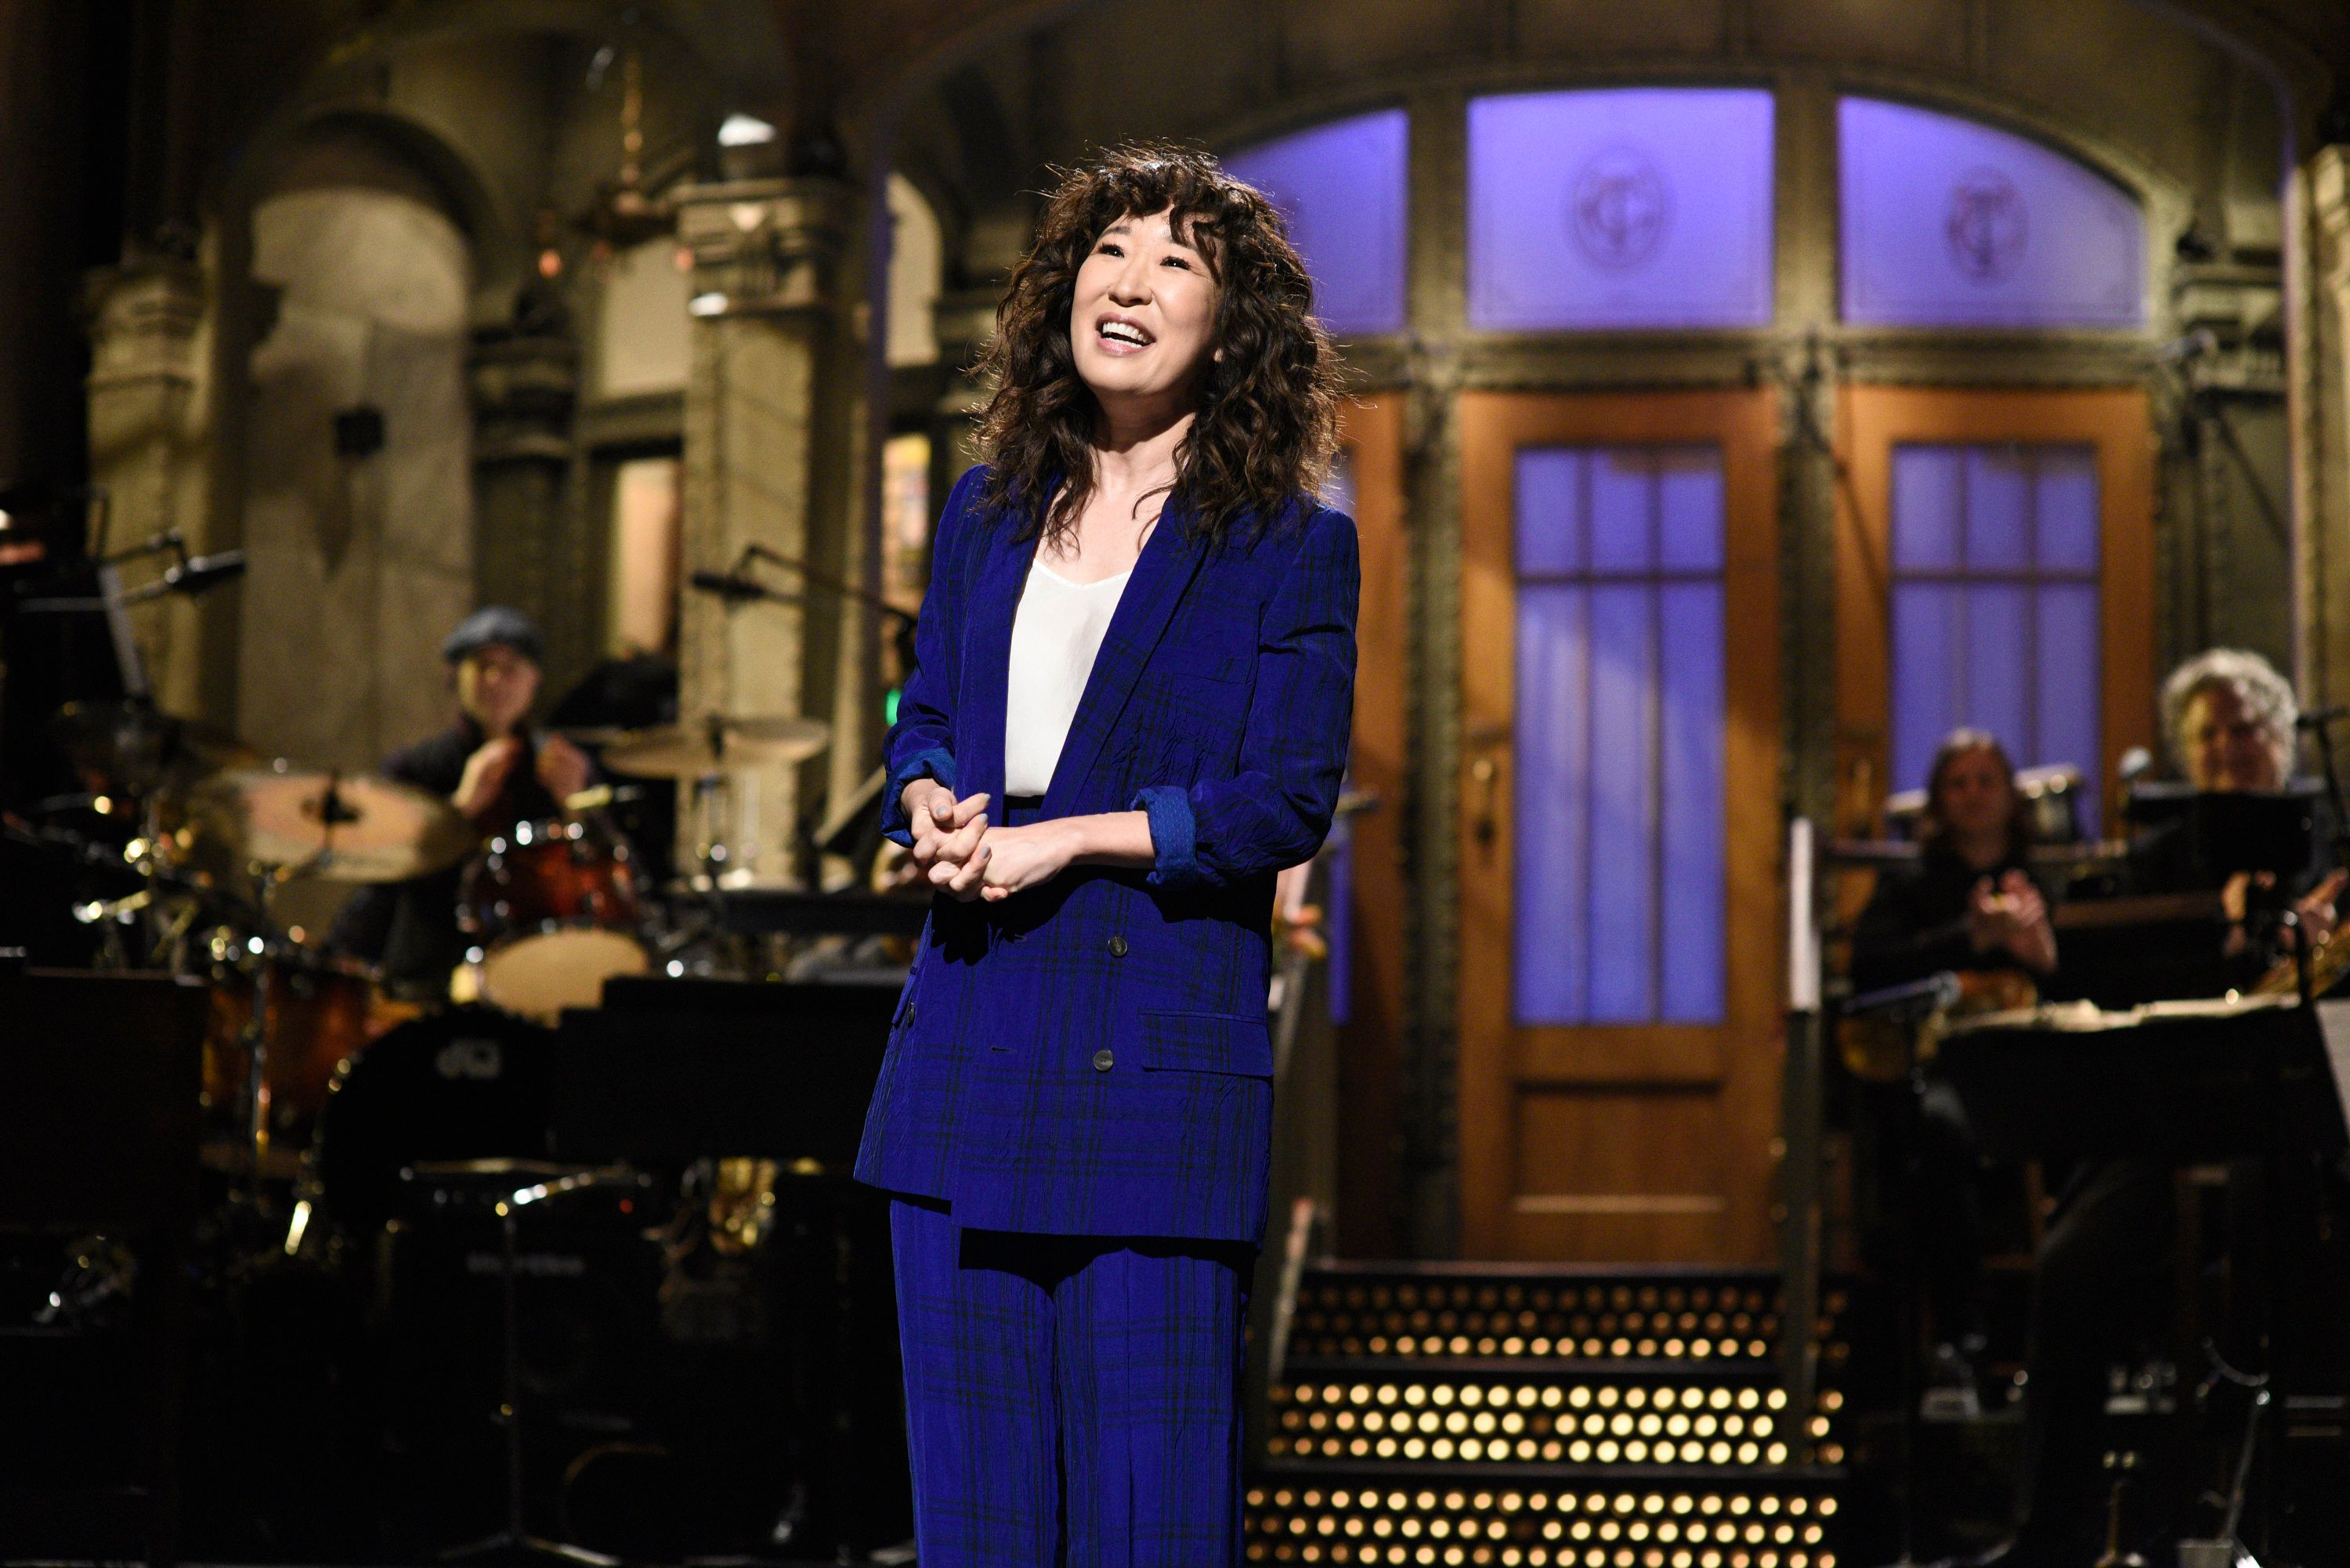 SATURDAY NIGHT LIVE -- 'Sandra Oh' Episode 1762 -- Pictured: Host Sandra Oh during the monologue on Saturday, March 30, 2019 -- (Photo by: Will Heath/NBC/NBCU Photo Bank via Getty Images)